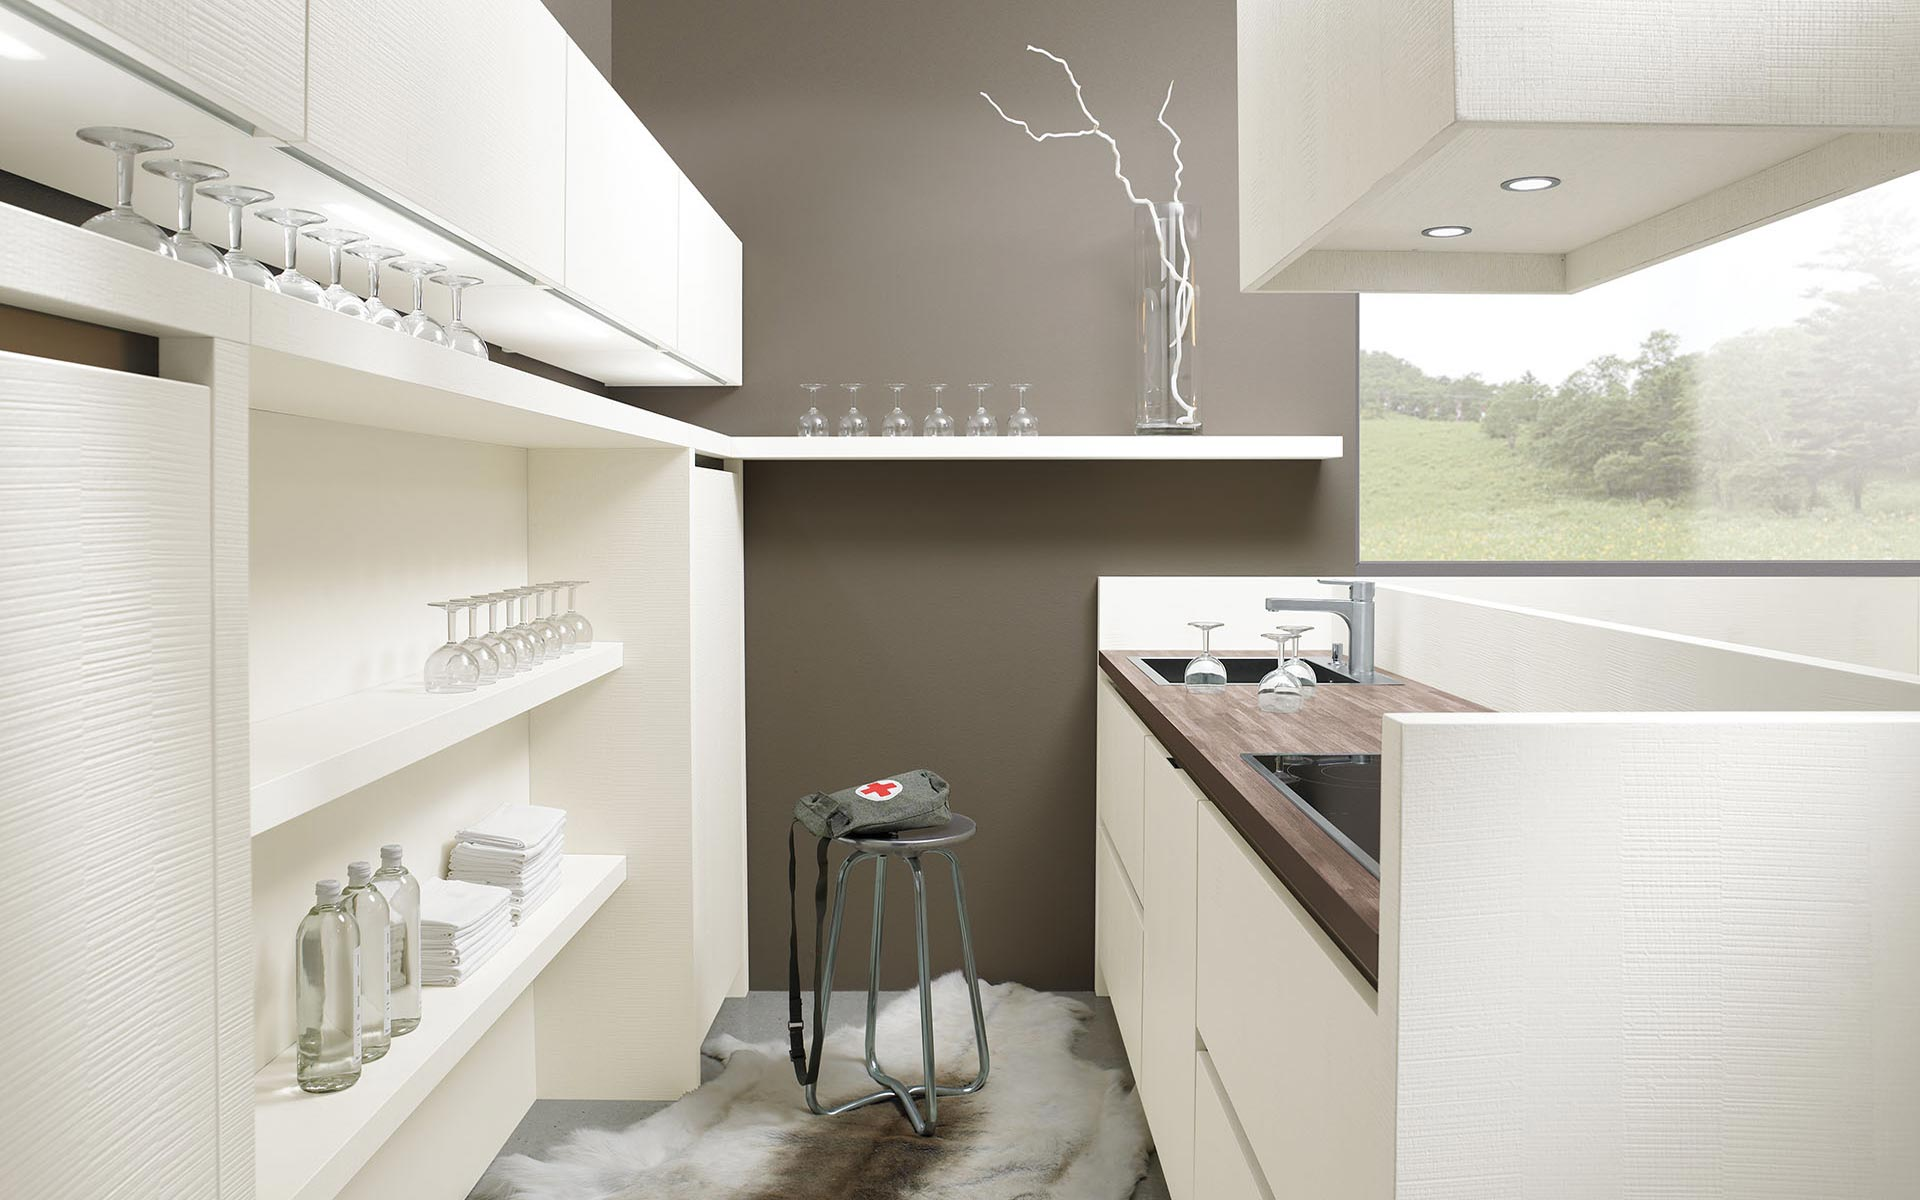 Toronto: Kitchens from Germany, Europe. Matrix Sierrado Magnolie